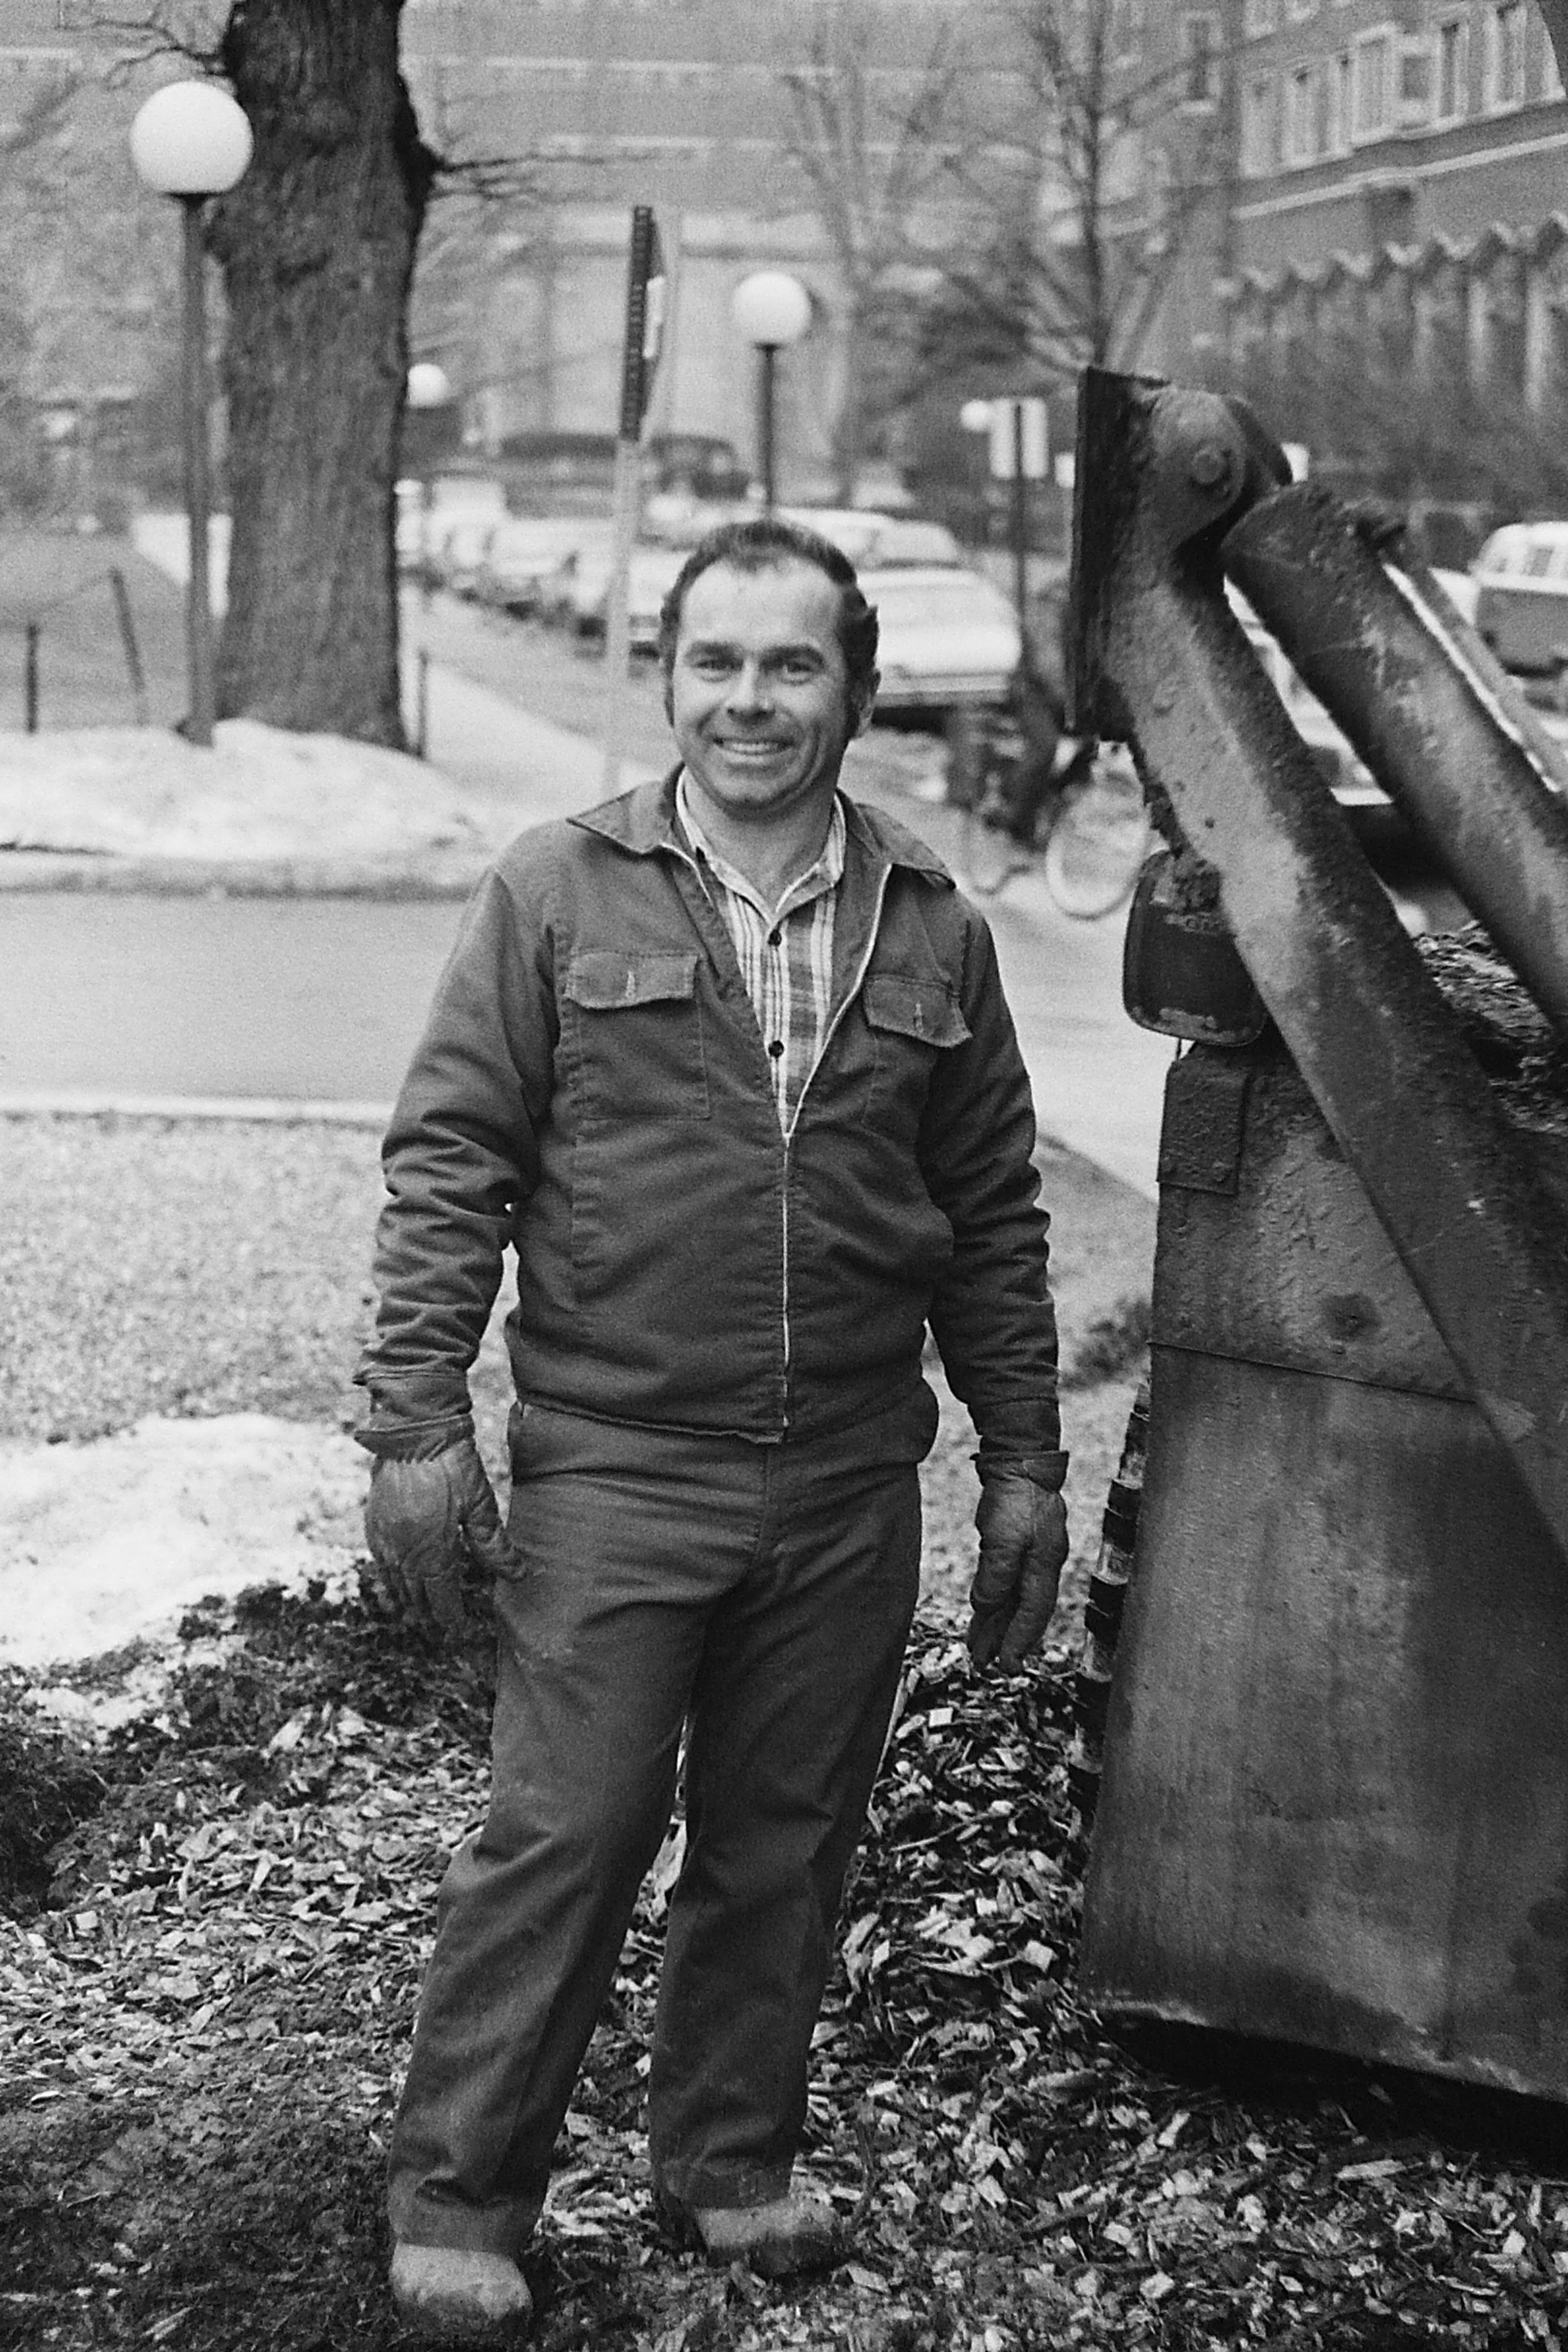 Tree Extractor Worker at U-M Law Library Construction Site, 1978 image